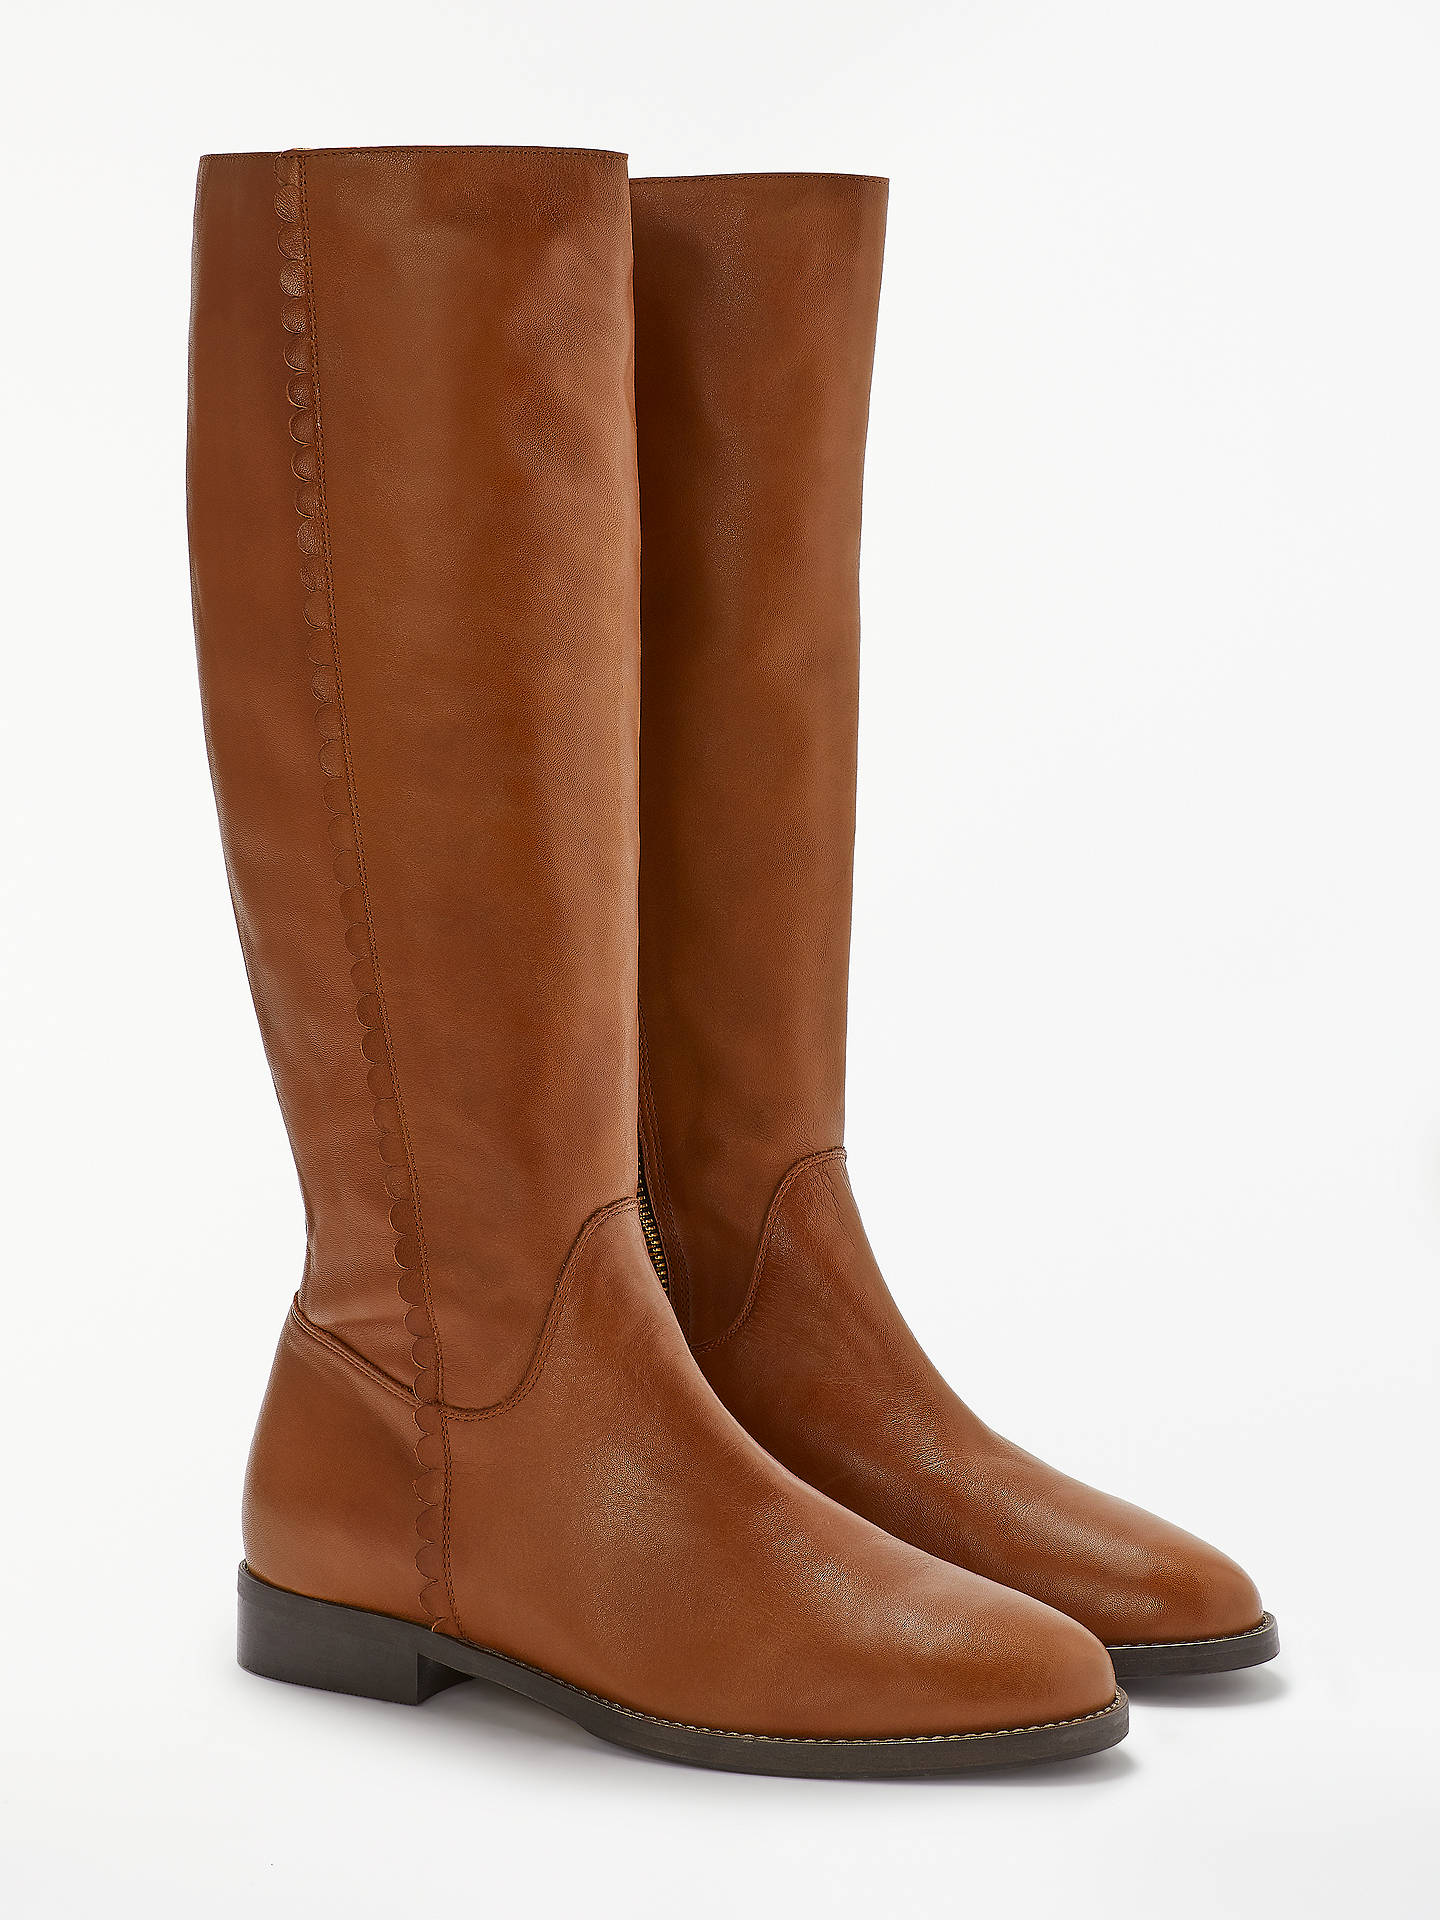 Buy Boden Malvern Block Heel Knee High Boots, Tan Leather, 5 Online at johnlewis.com